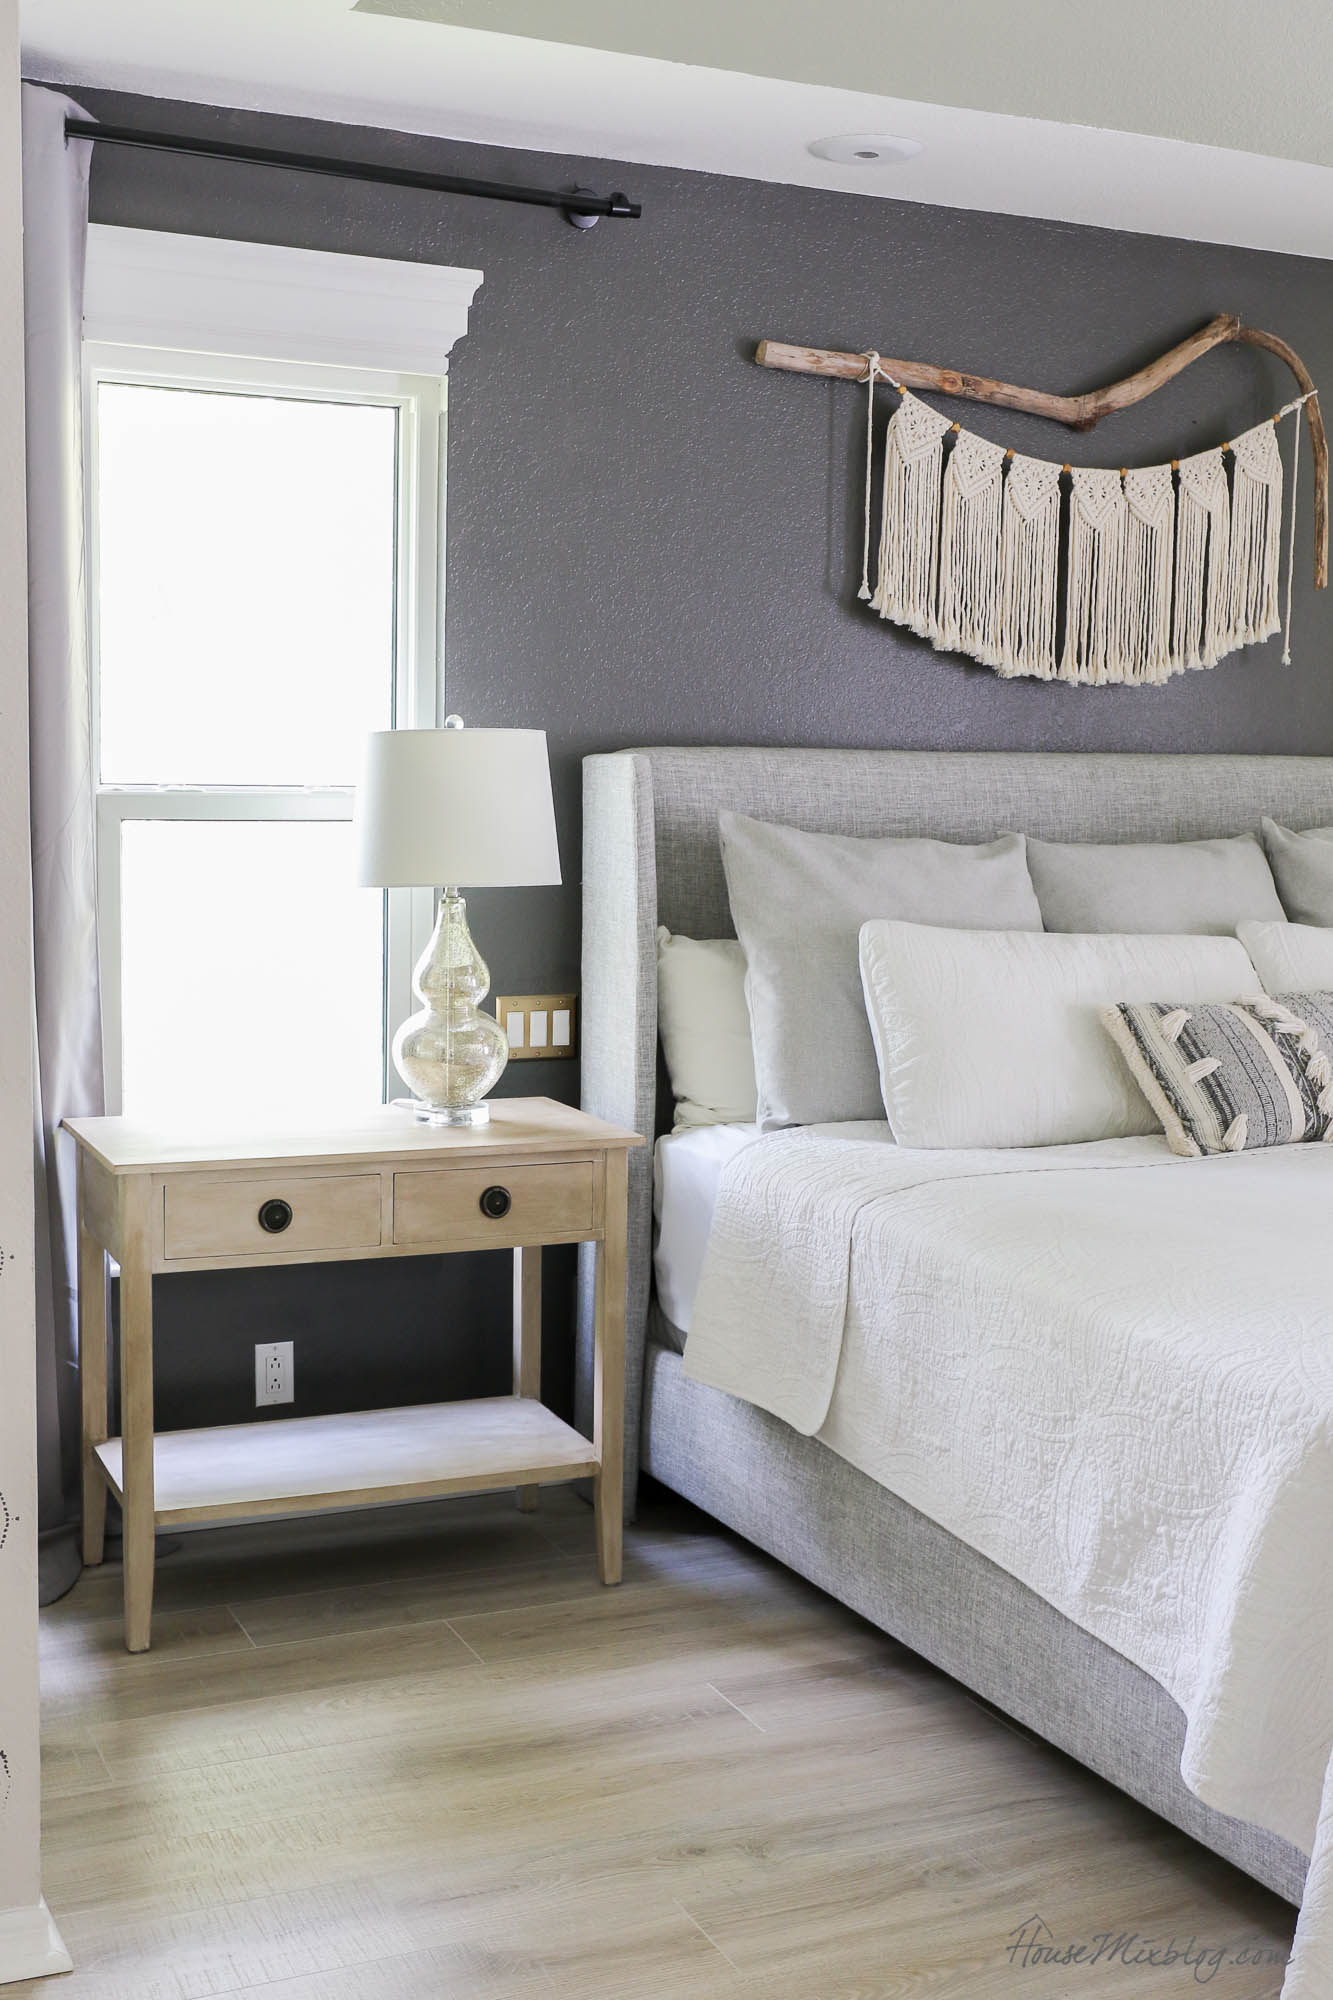 Painting nightstands to look like raw wood - faux wood paint DIY